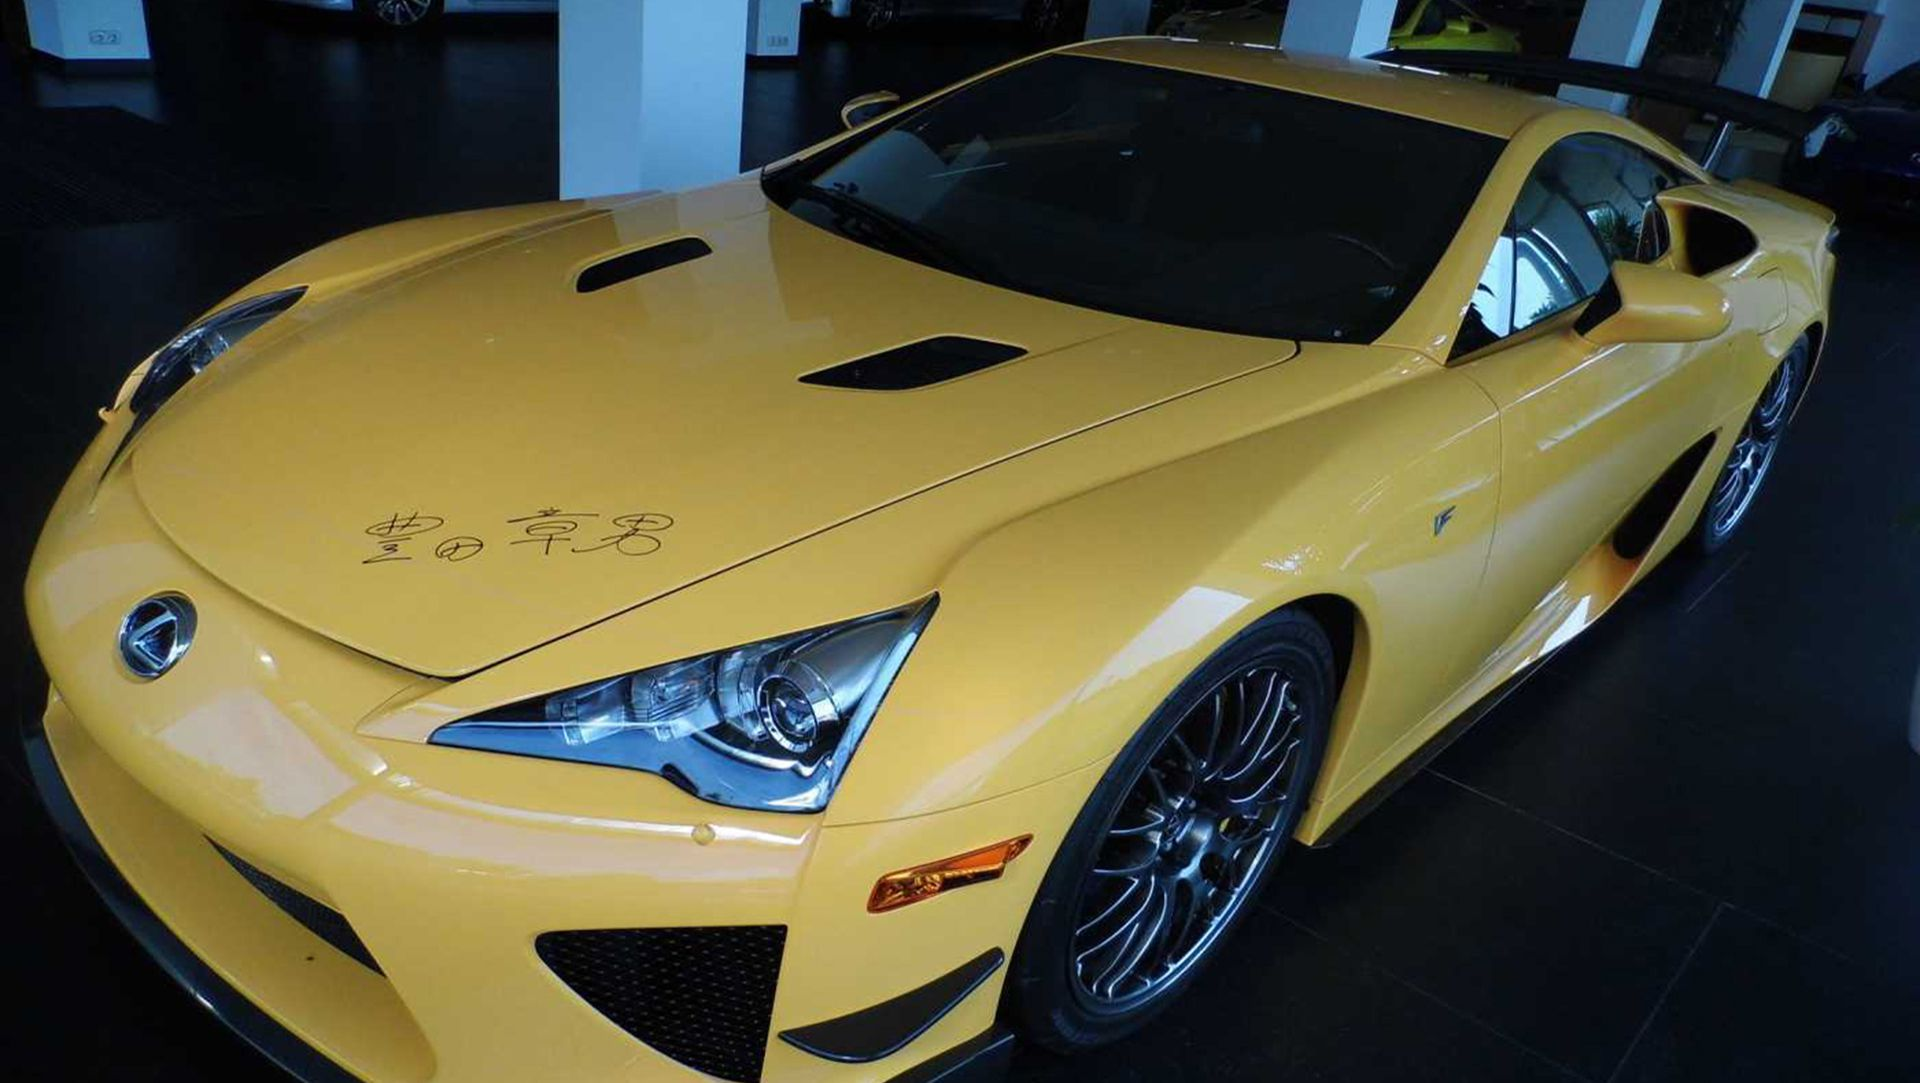 Lexus Lfa Nurburgring Edition For Sale With A Price Tag Of $7 Million